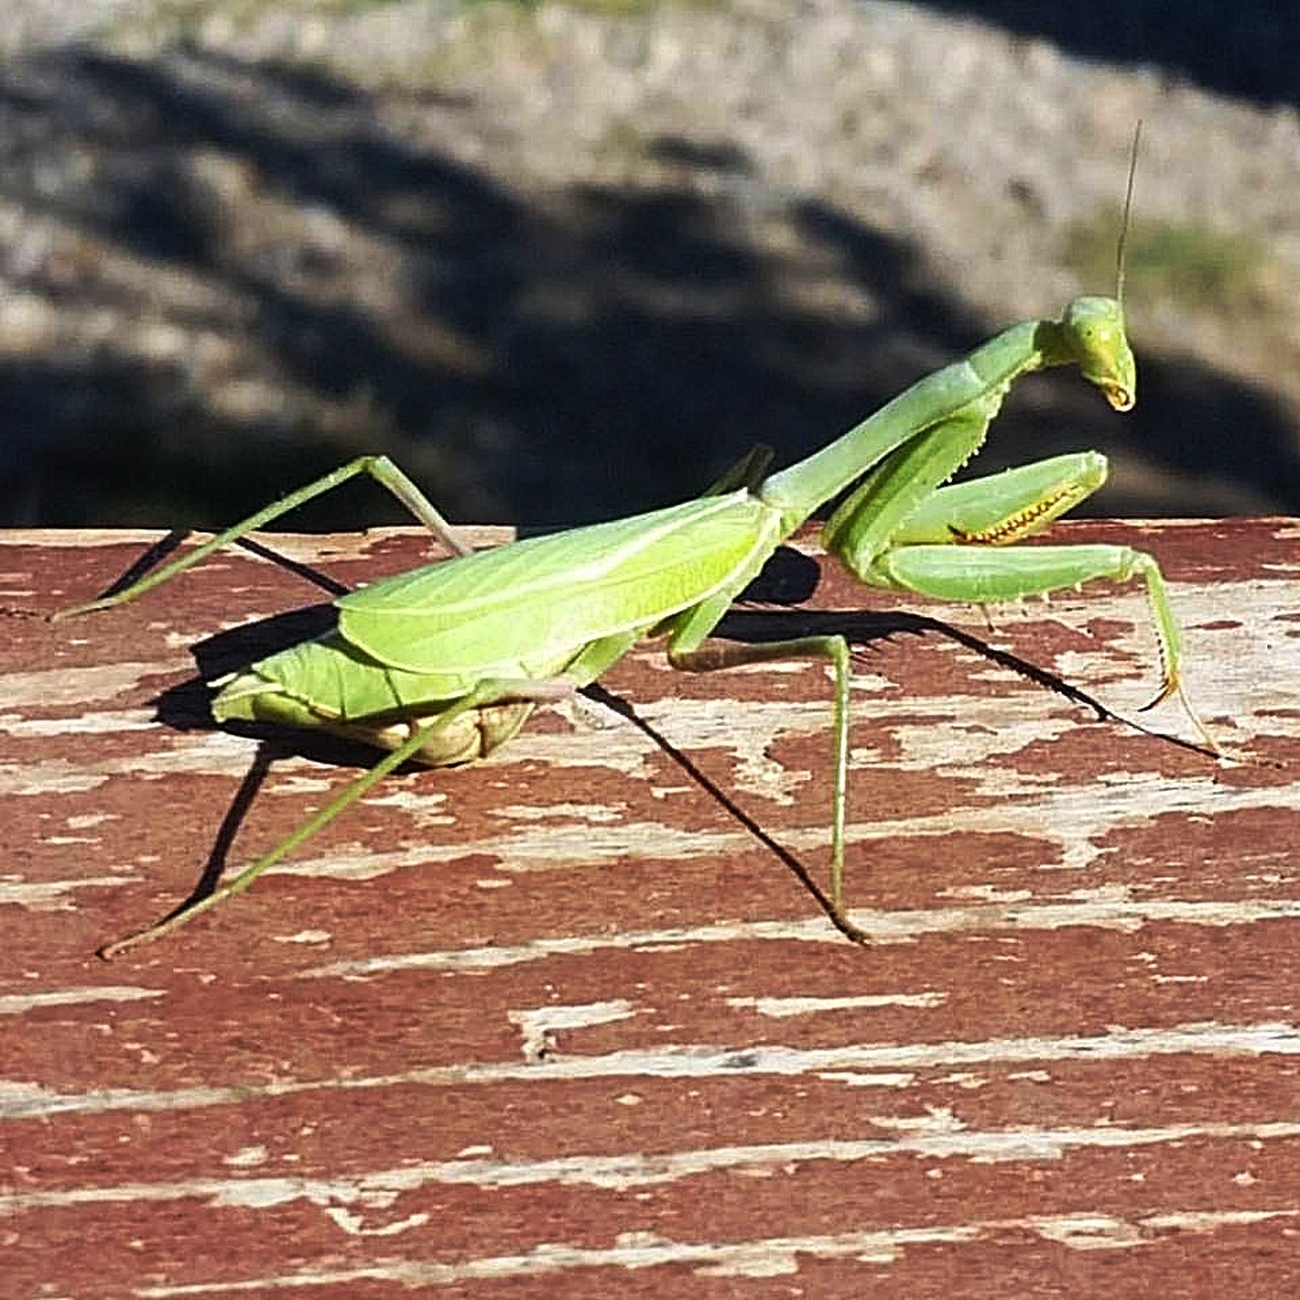 This praying mantis was on our deck in Aztec, New Mexico on September 22, 2016.